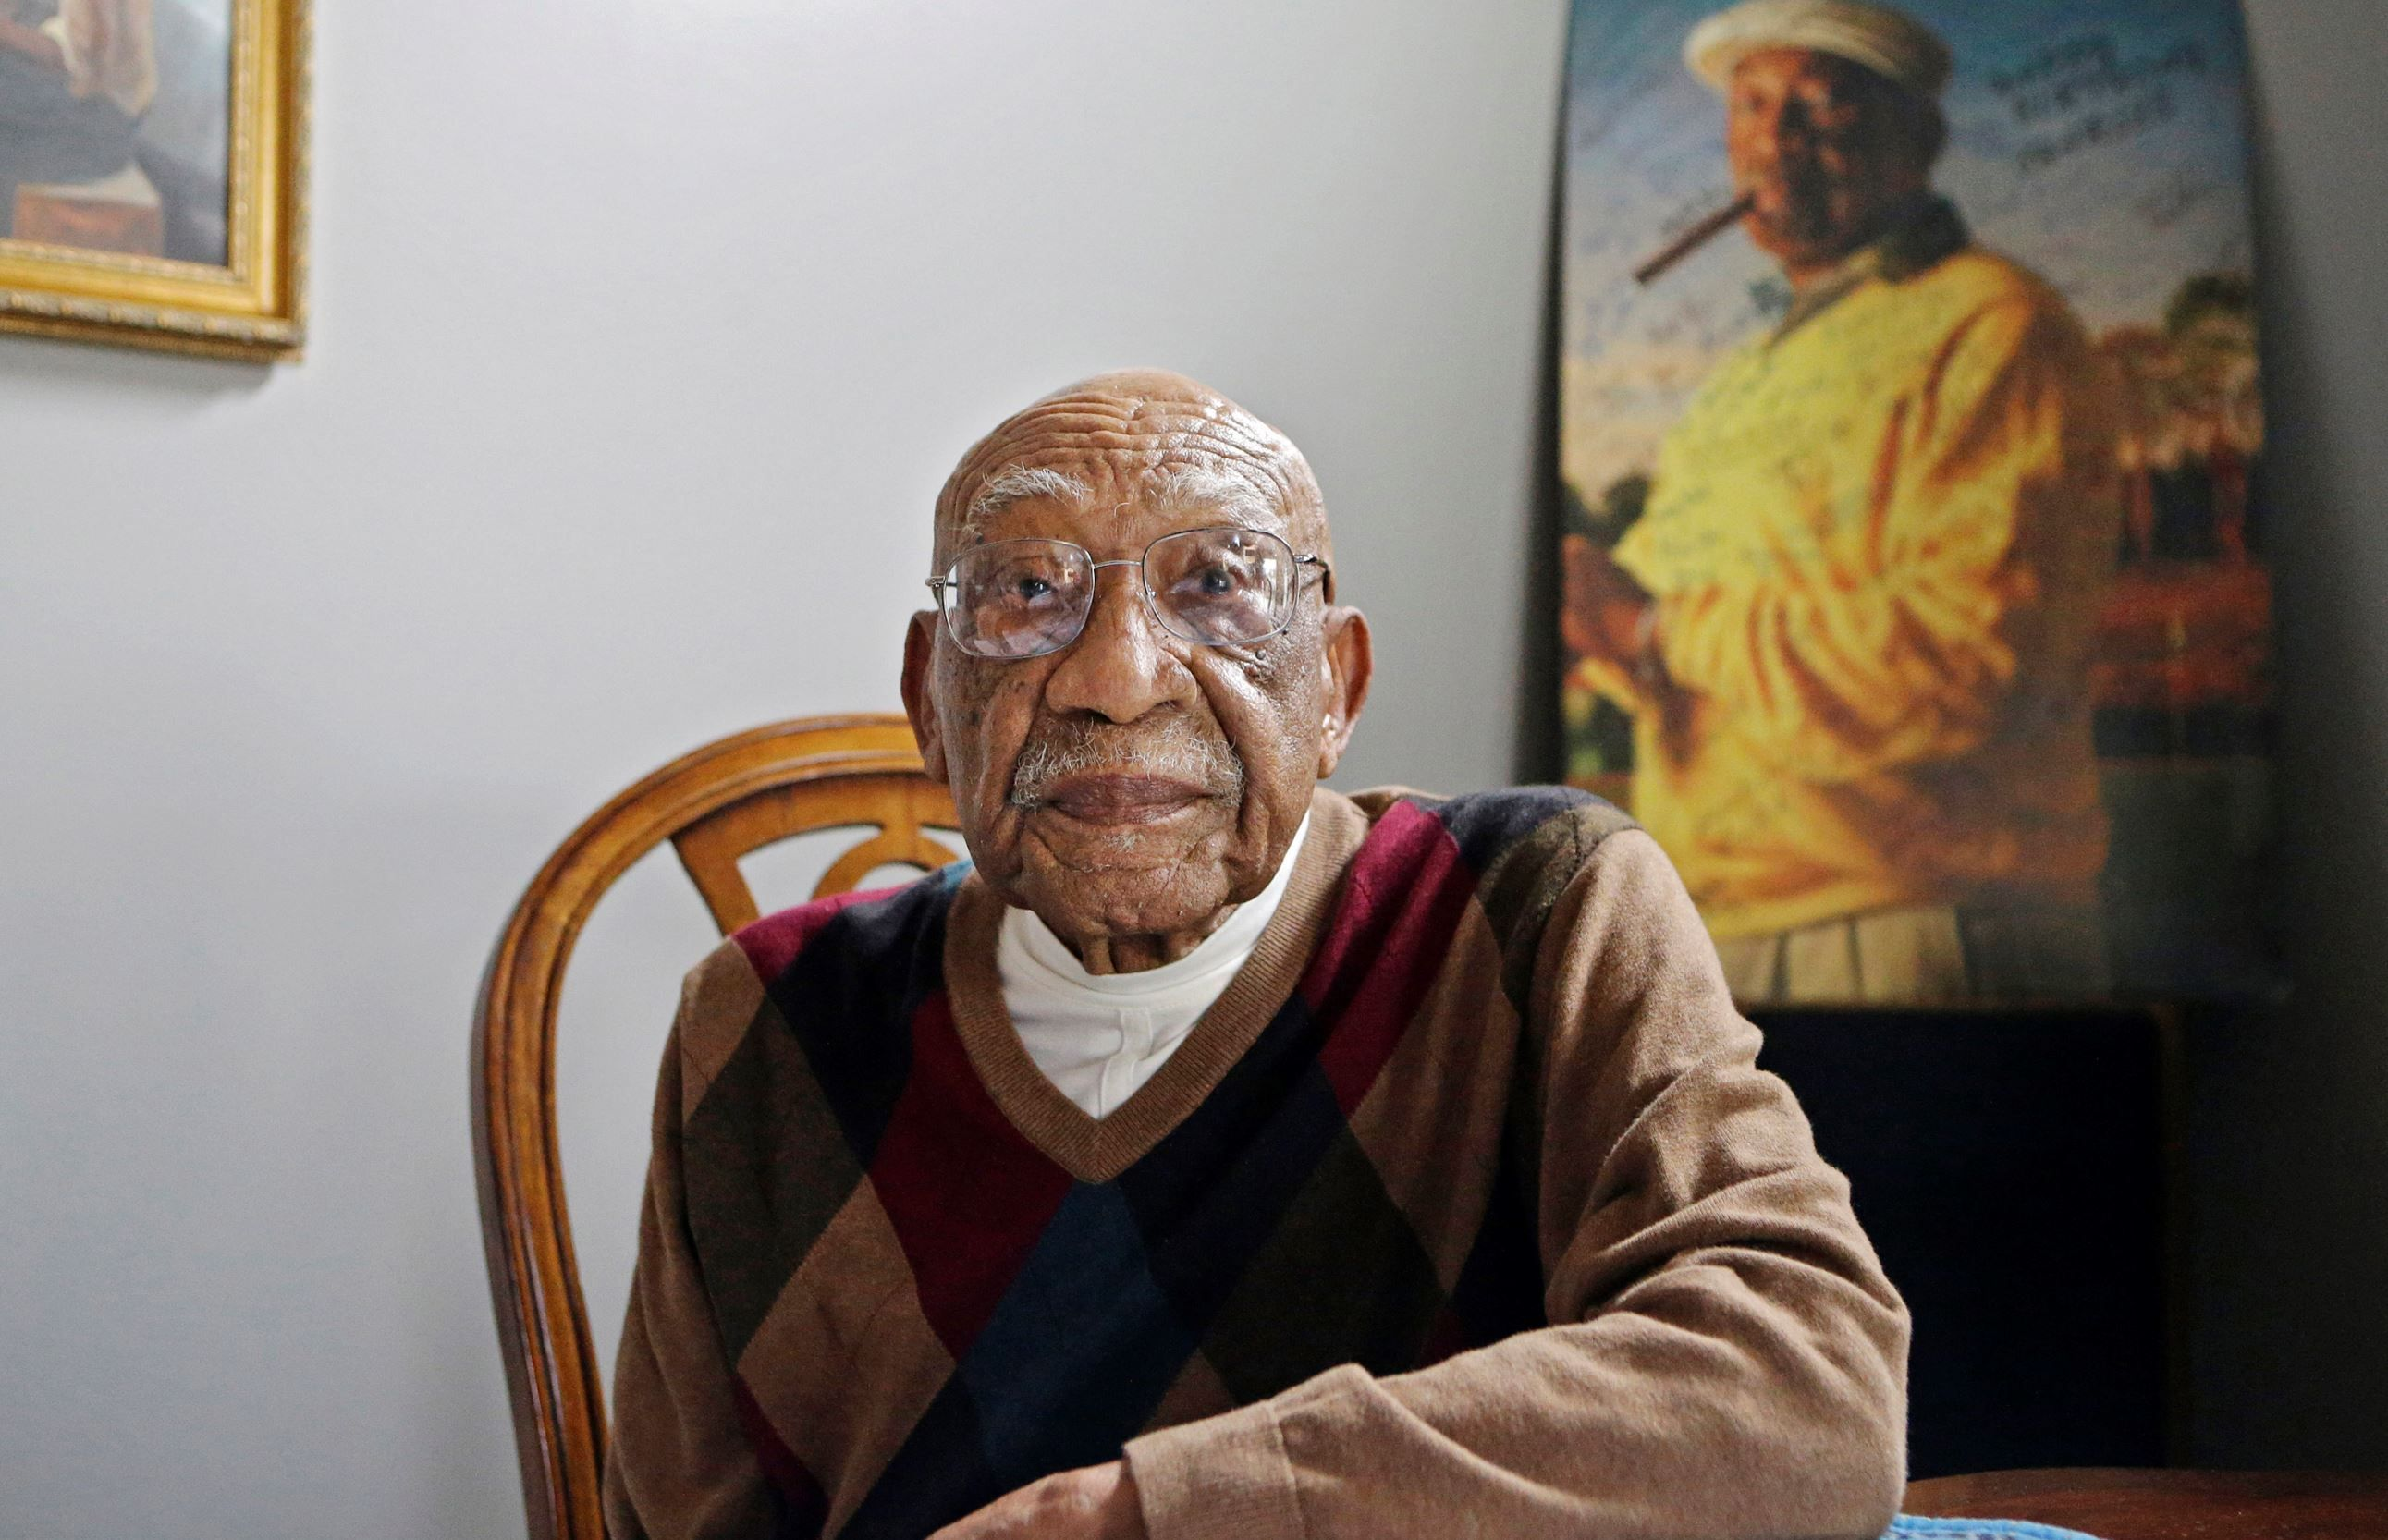 Golf pioneer sifford dies at 92 black history facts